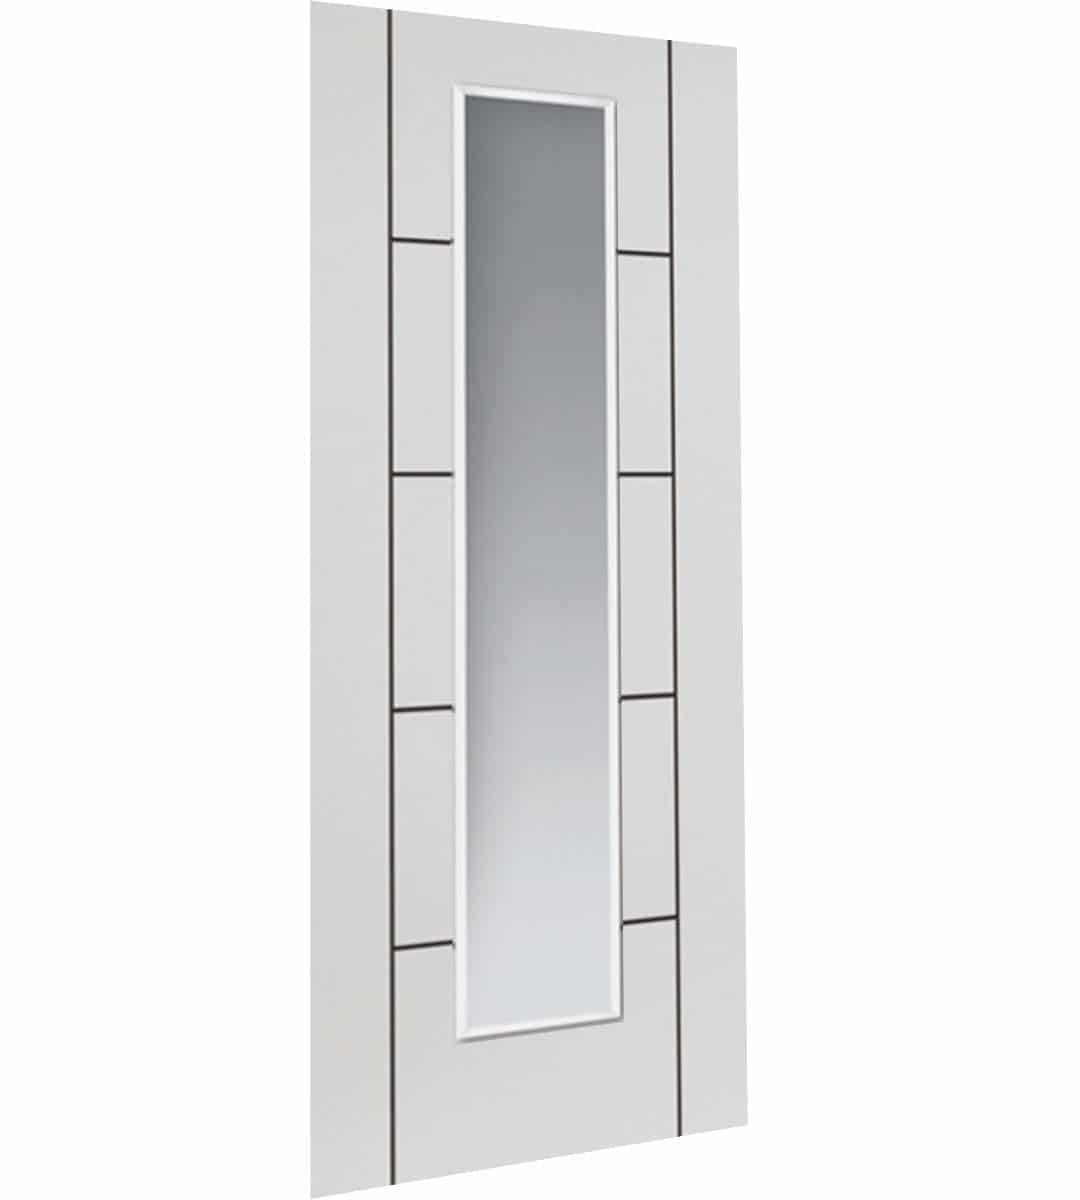 eco linea white glazed interior door